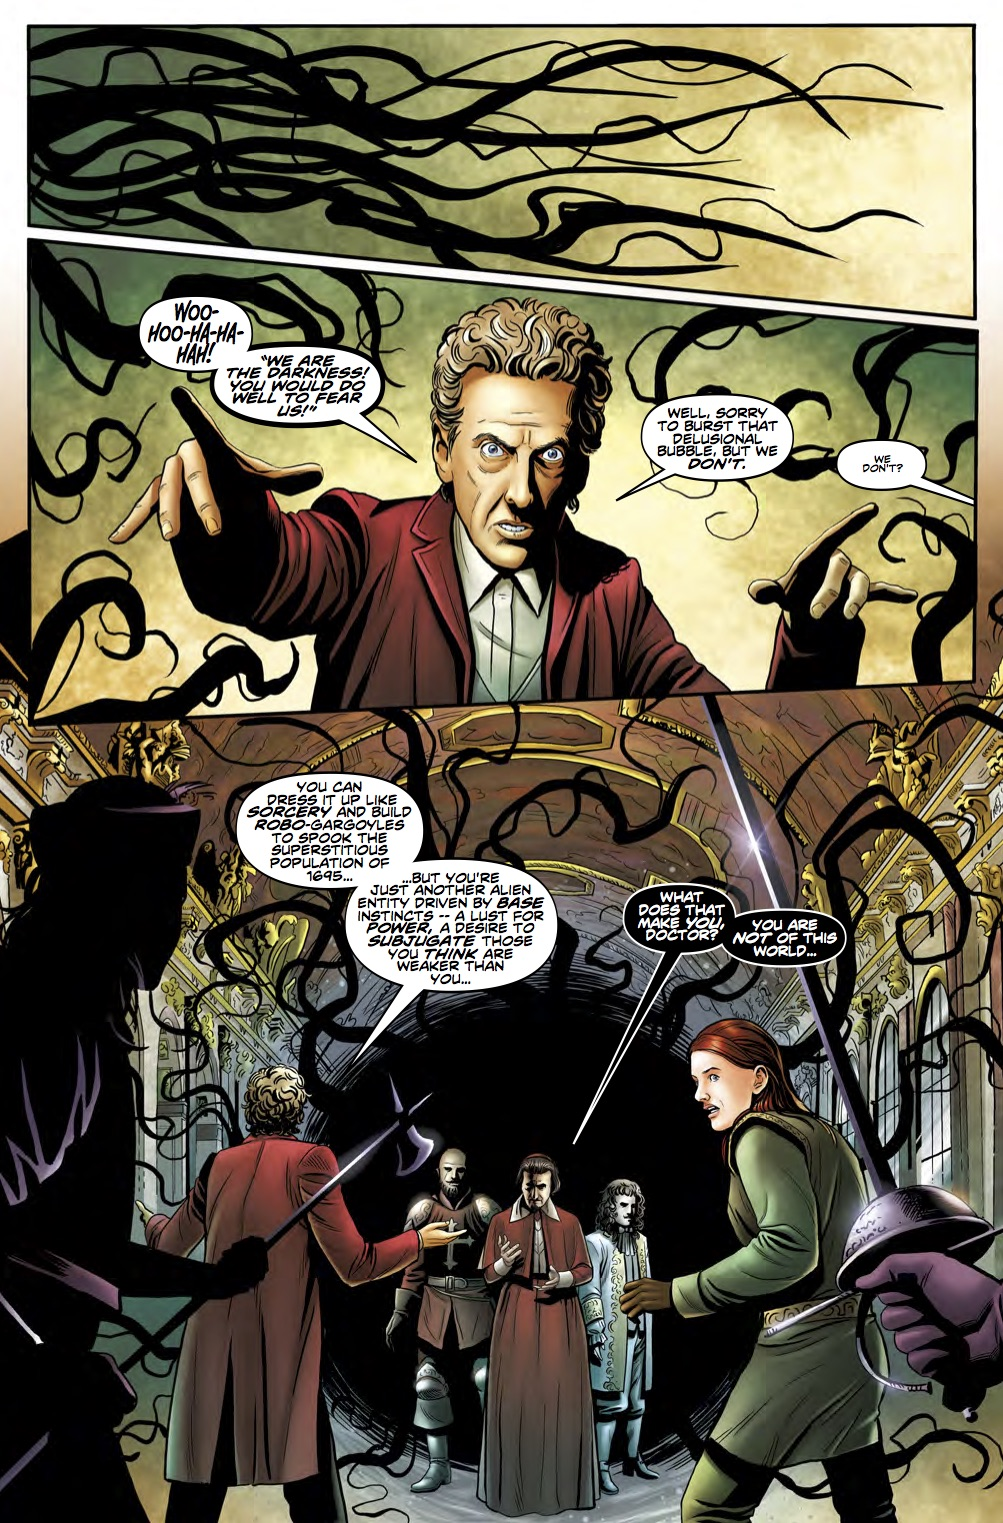 TITAN COMICS - DOCTOR WHO 12th #2.13 - Preview 1